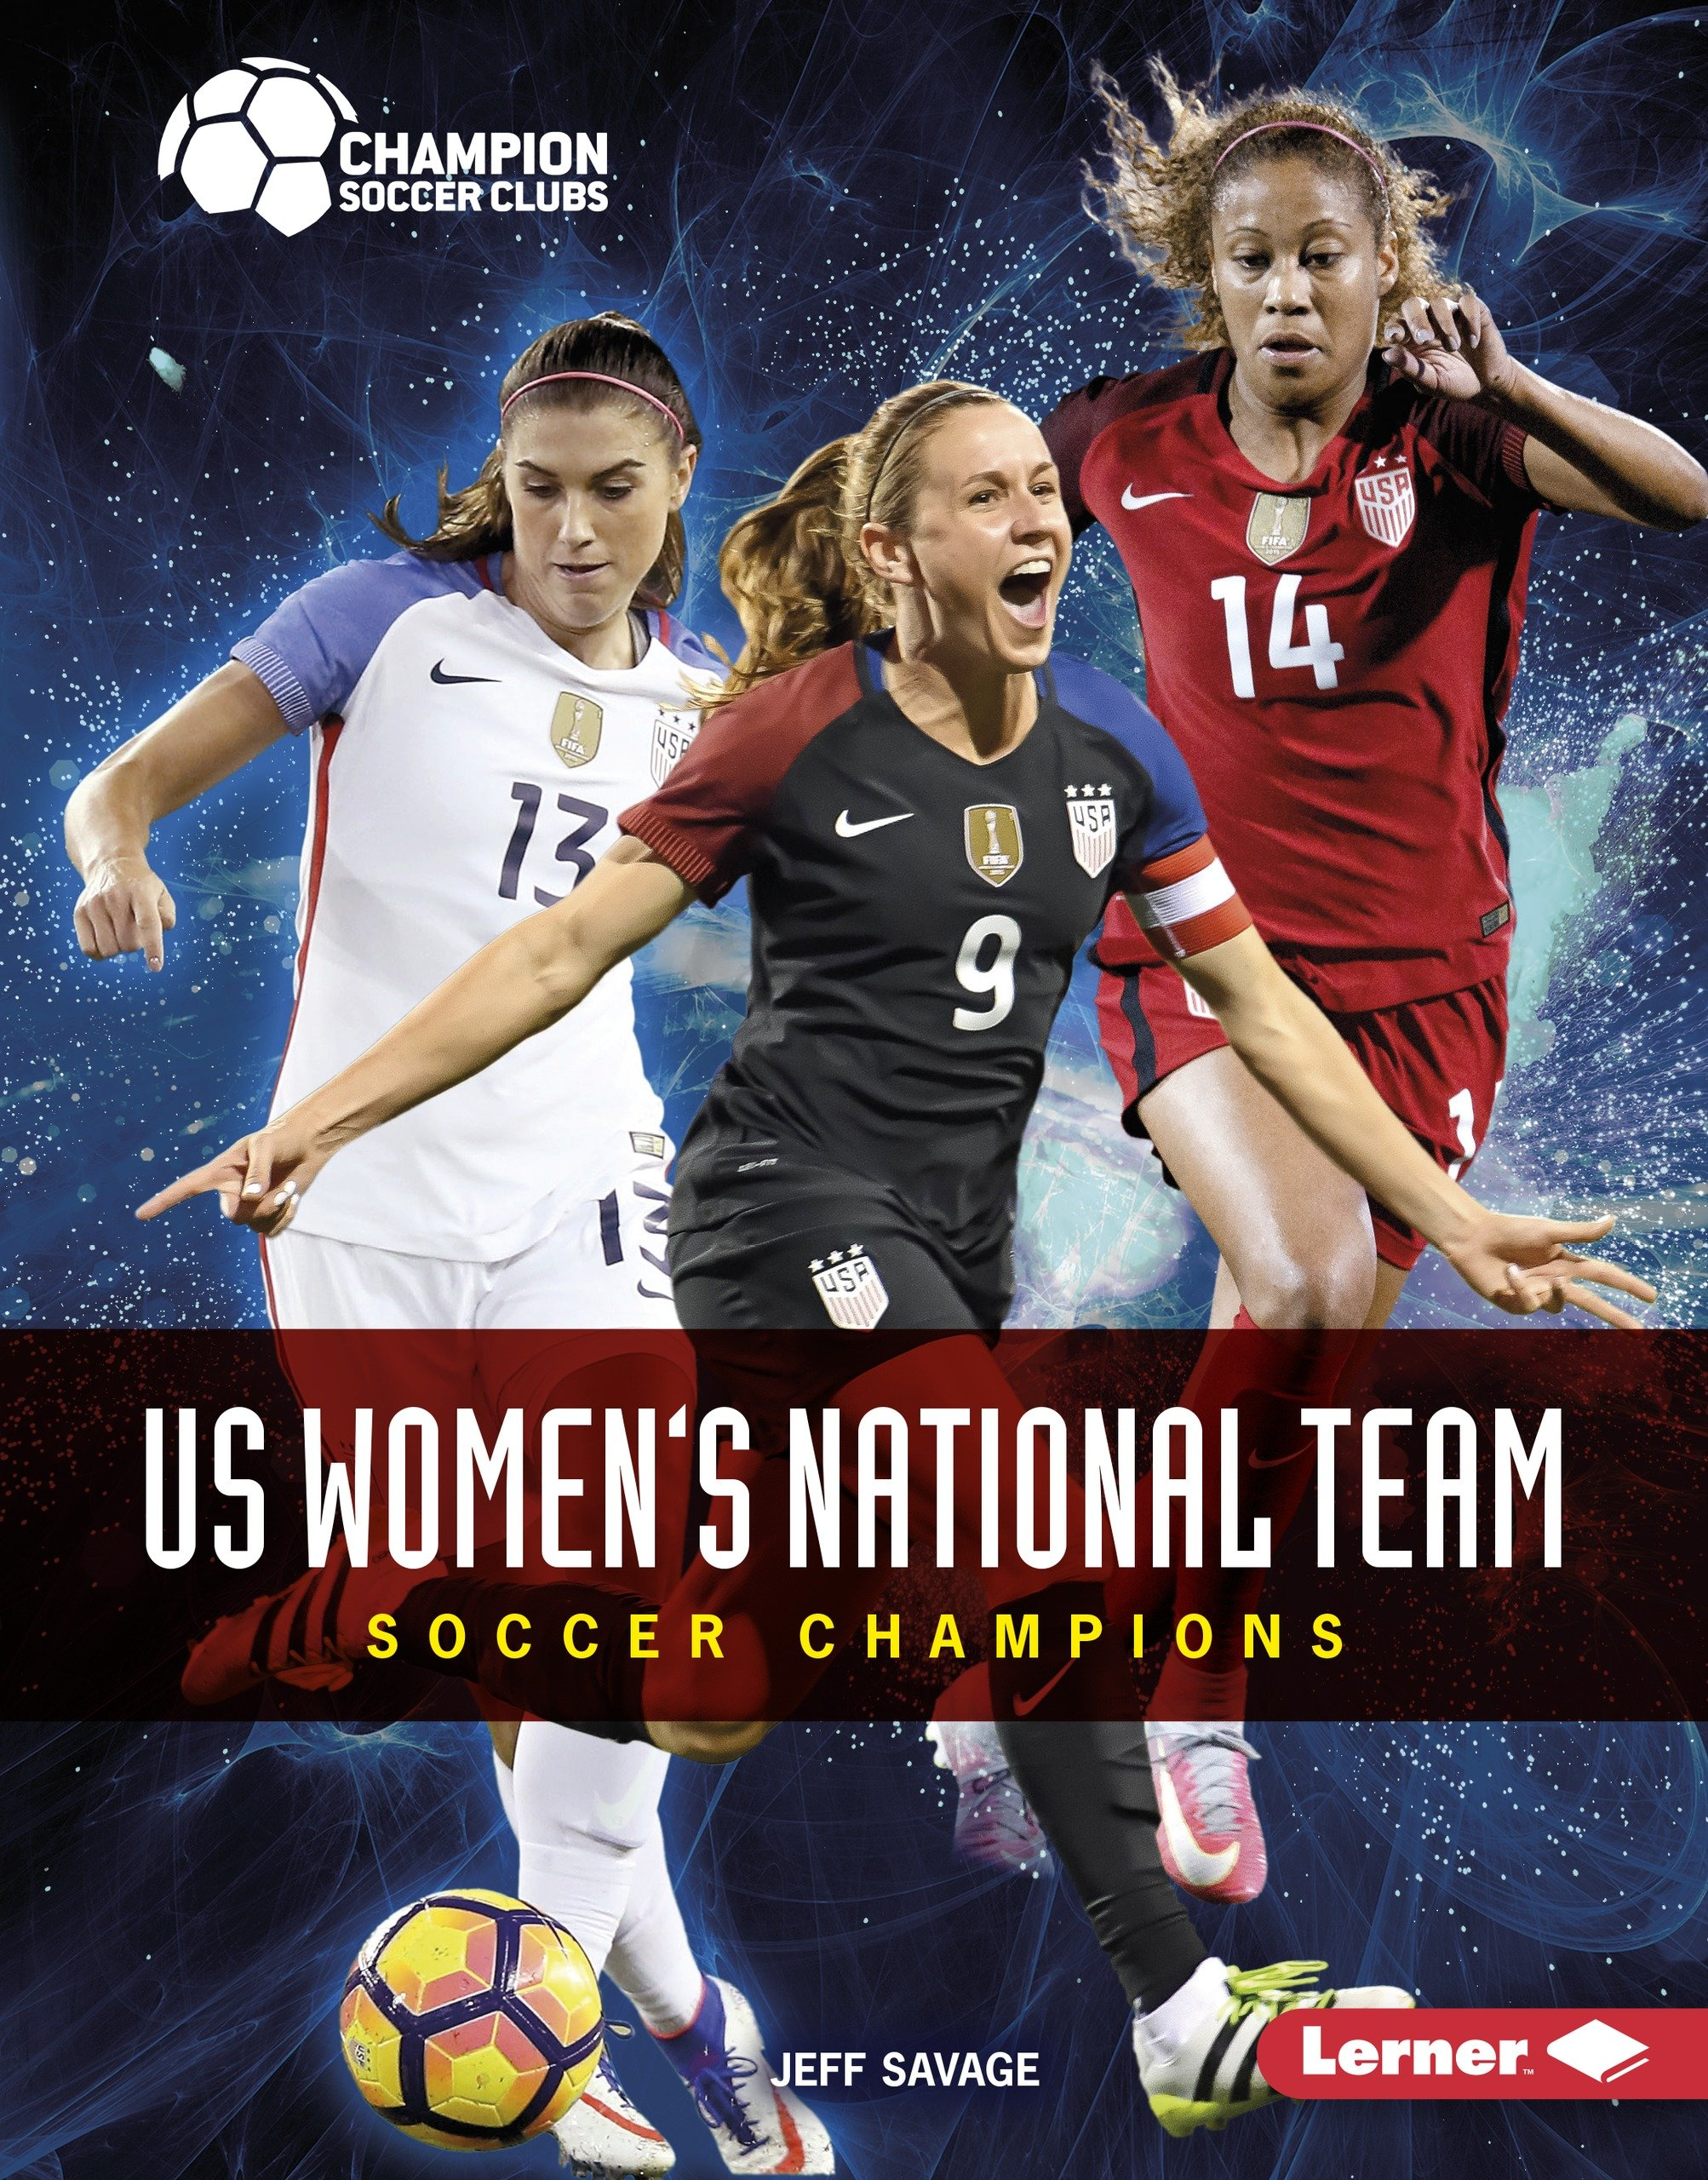 us-women-s-national-team-soccer-champions-champion-soccer-clubs